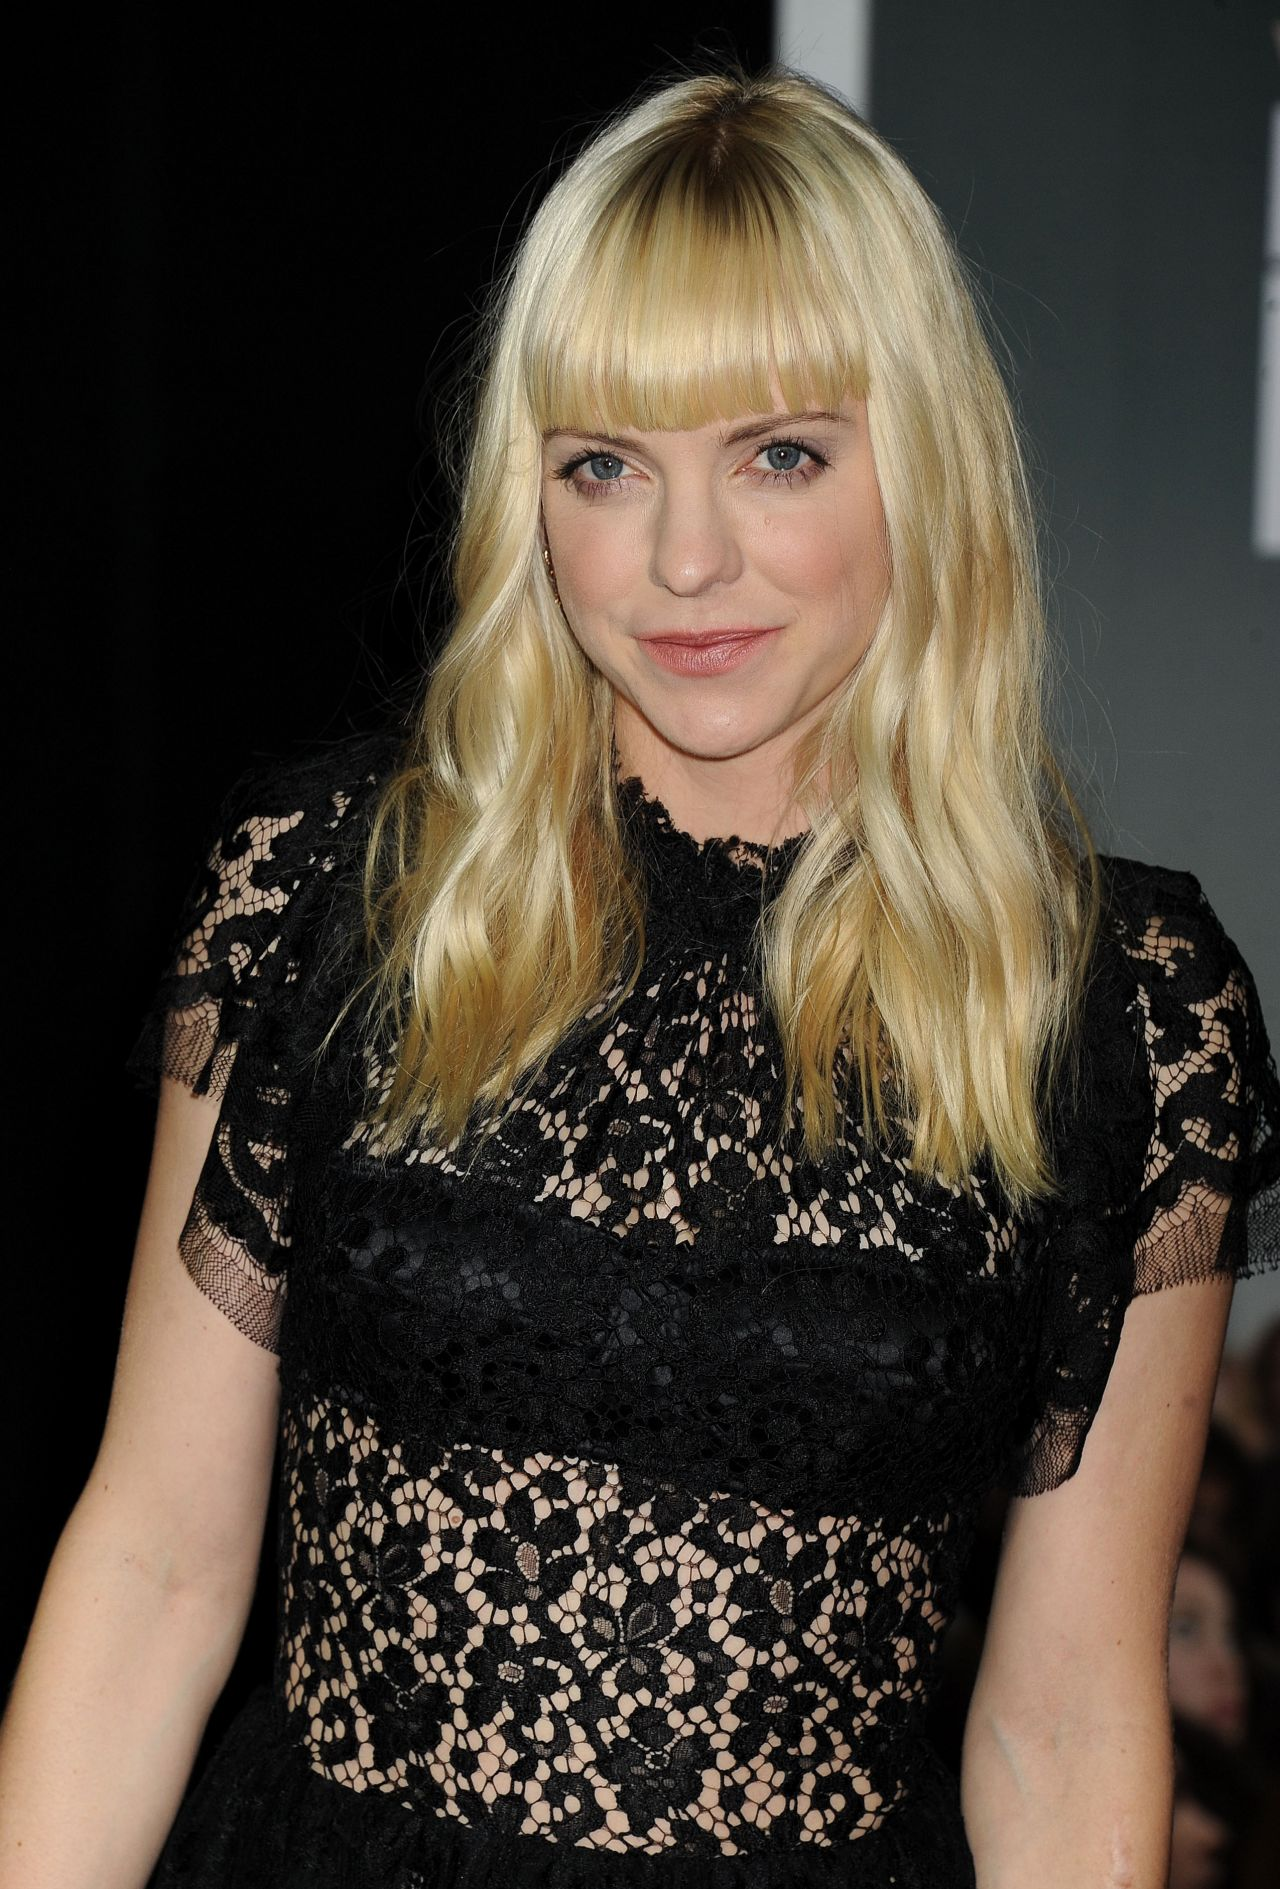 Anna Faris on Red Carpet - DELIVERY MAN Movie Premiere in Los Angeles